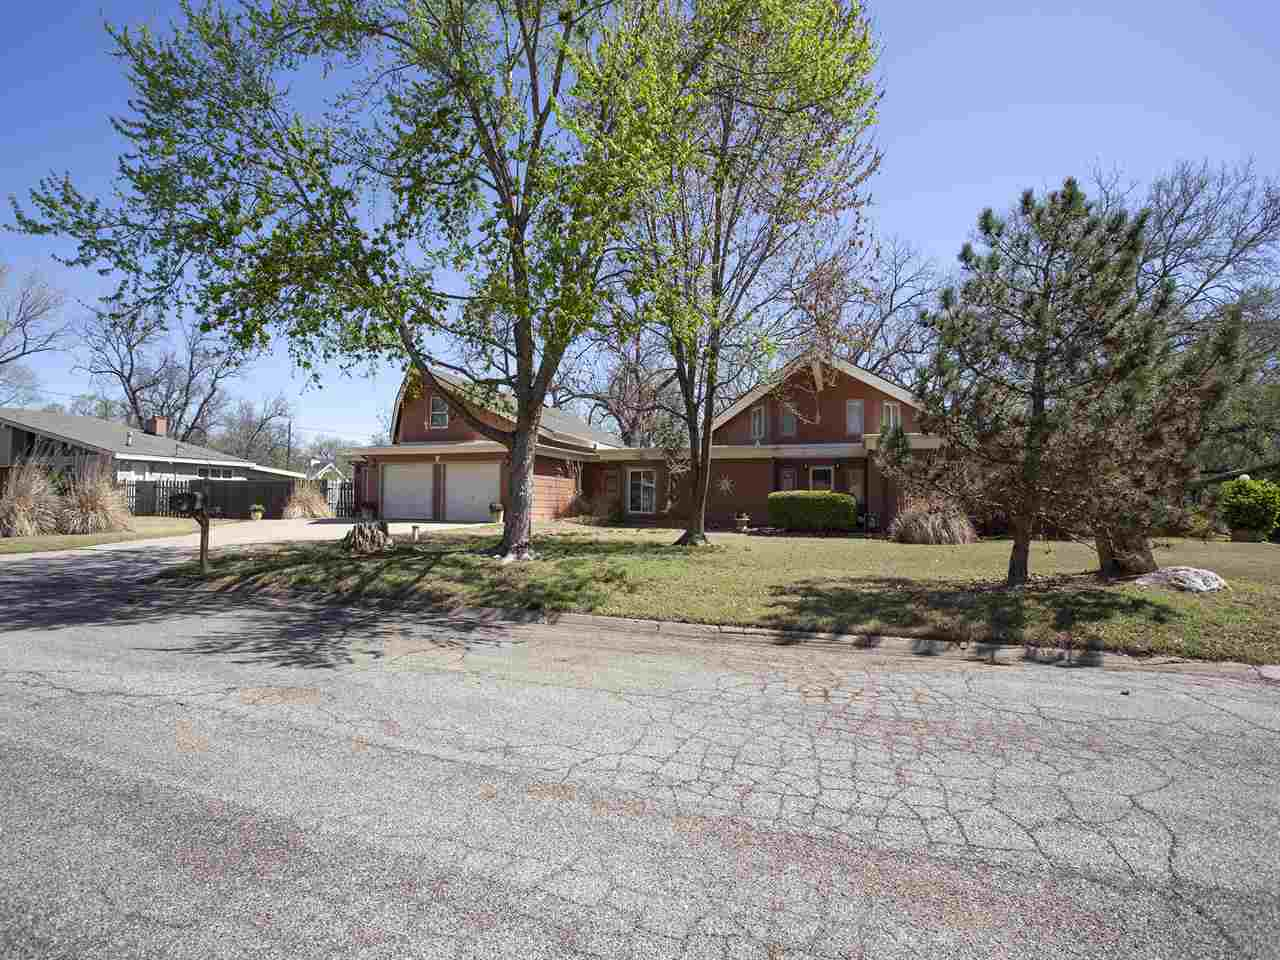 Beautiful unique home in West Wichita located on half acre with a water view. Total of 3 bdrms, 2 ba